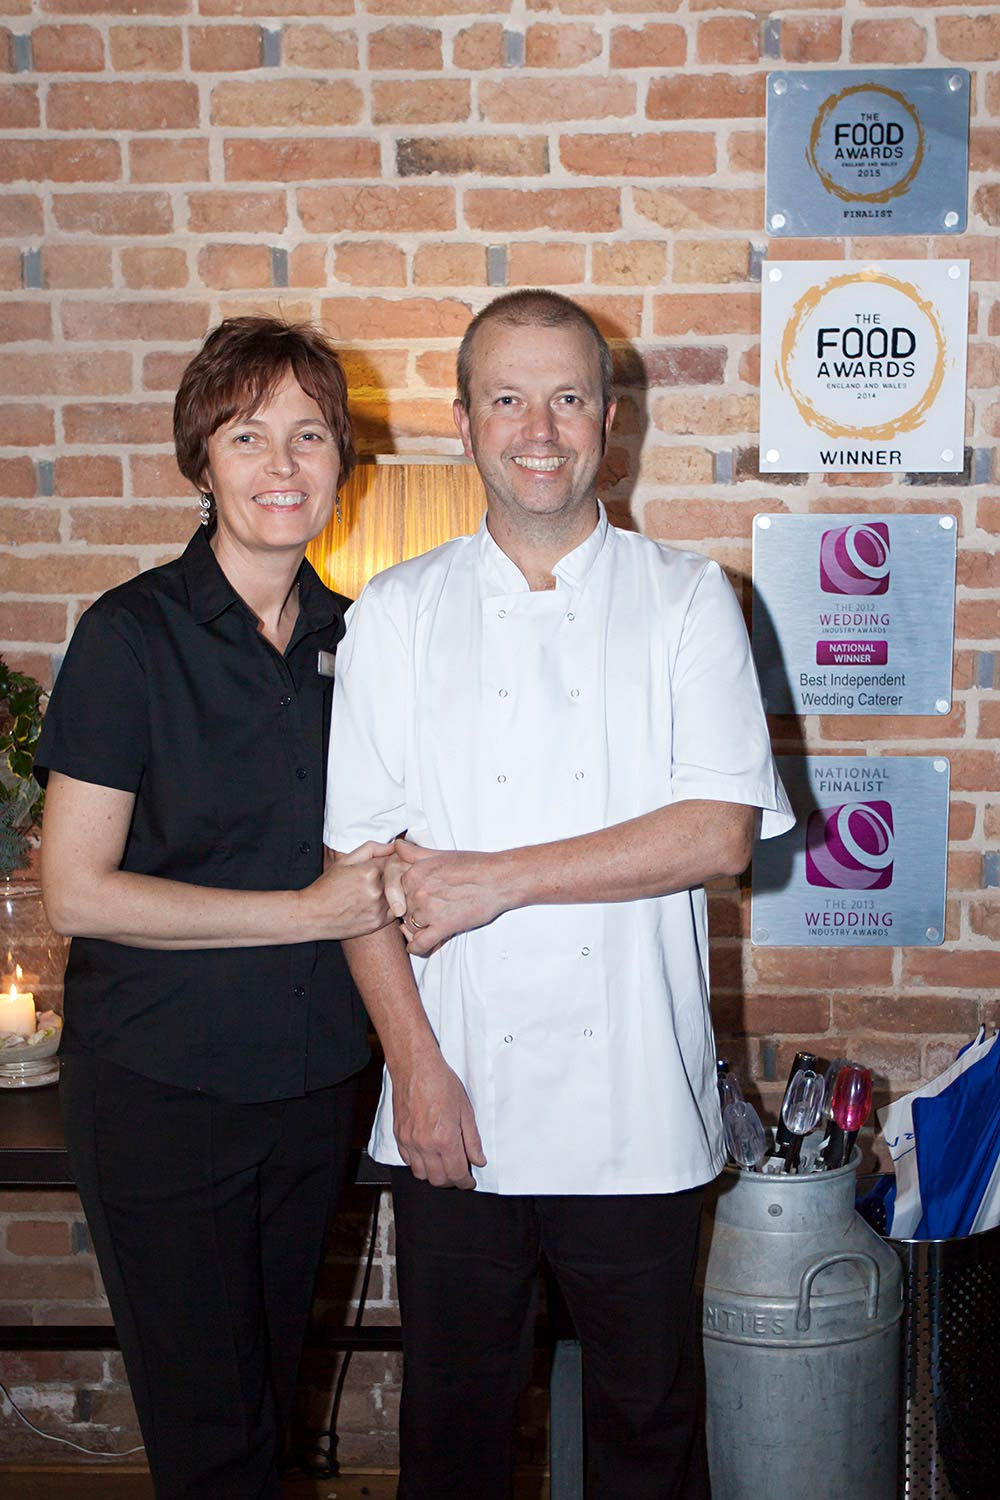 Food Industry Award 2015 Finalists